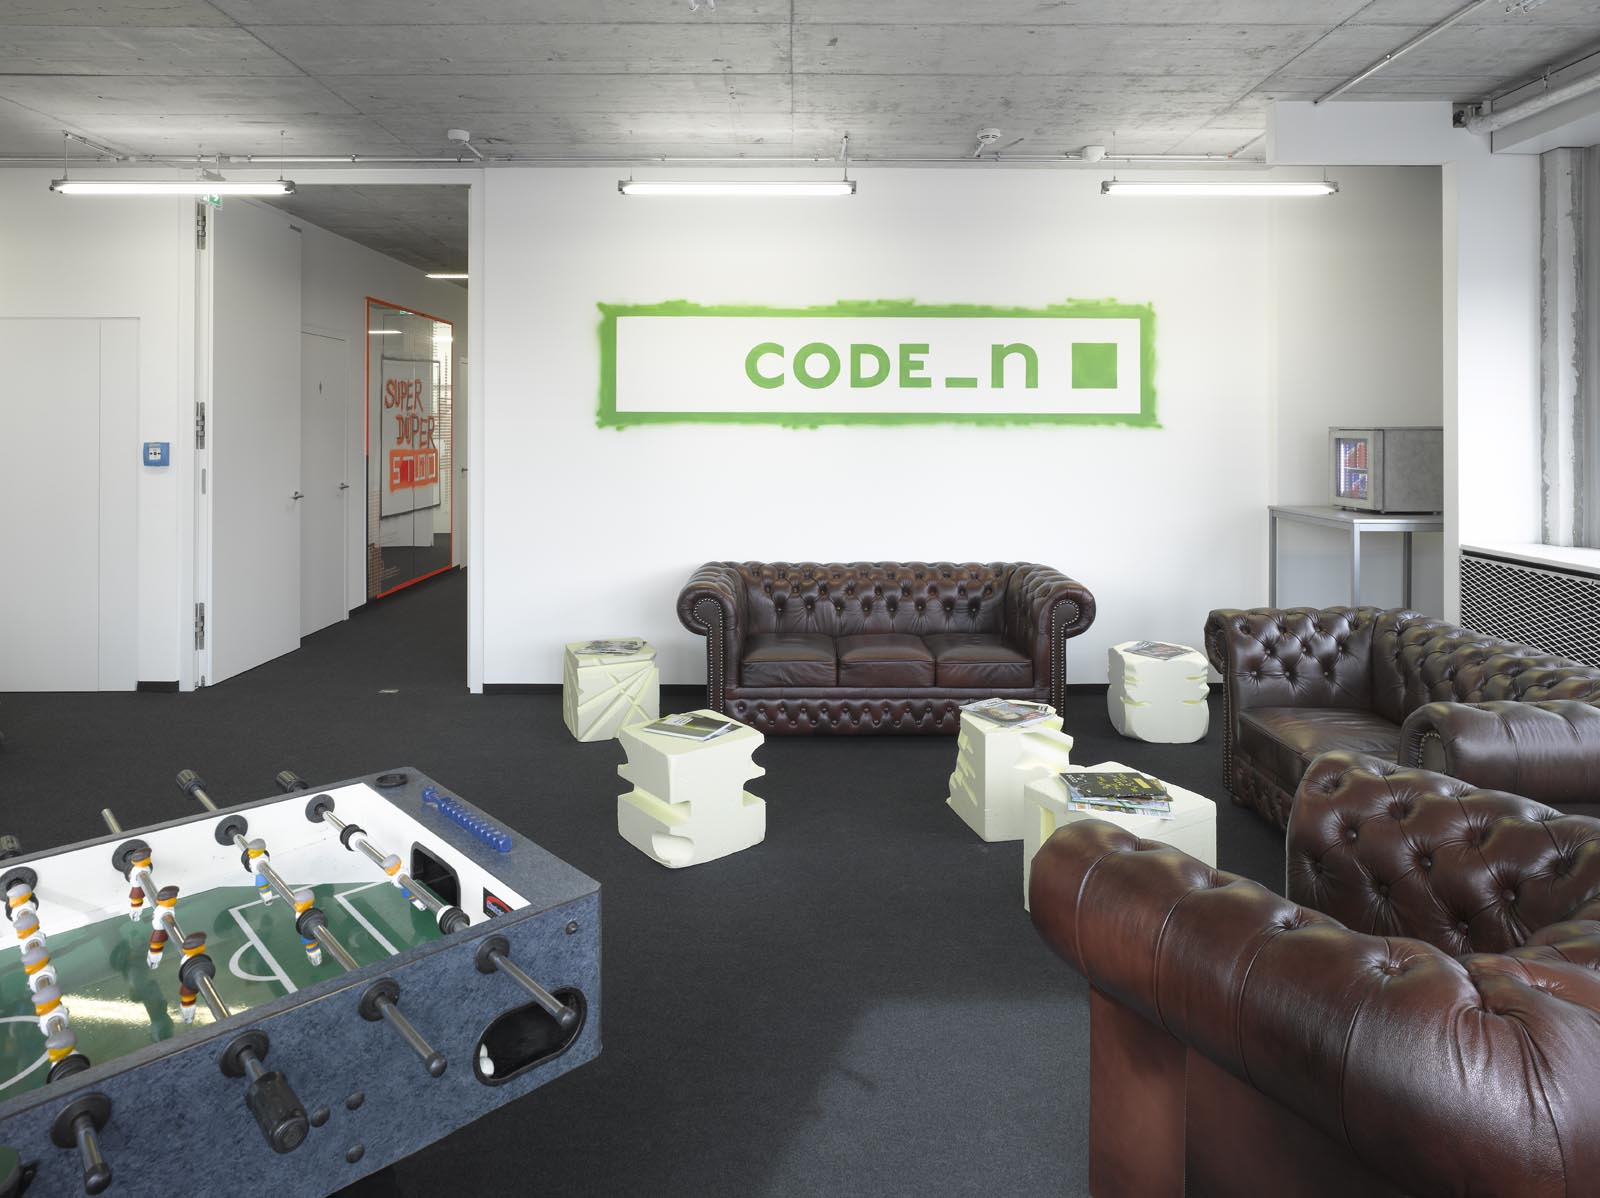 CODE_n SPACES Community Area with Lounge Corner